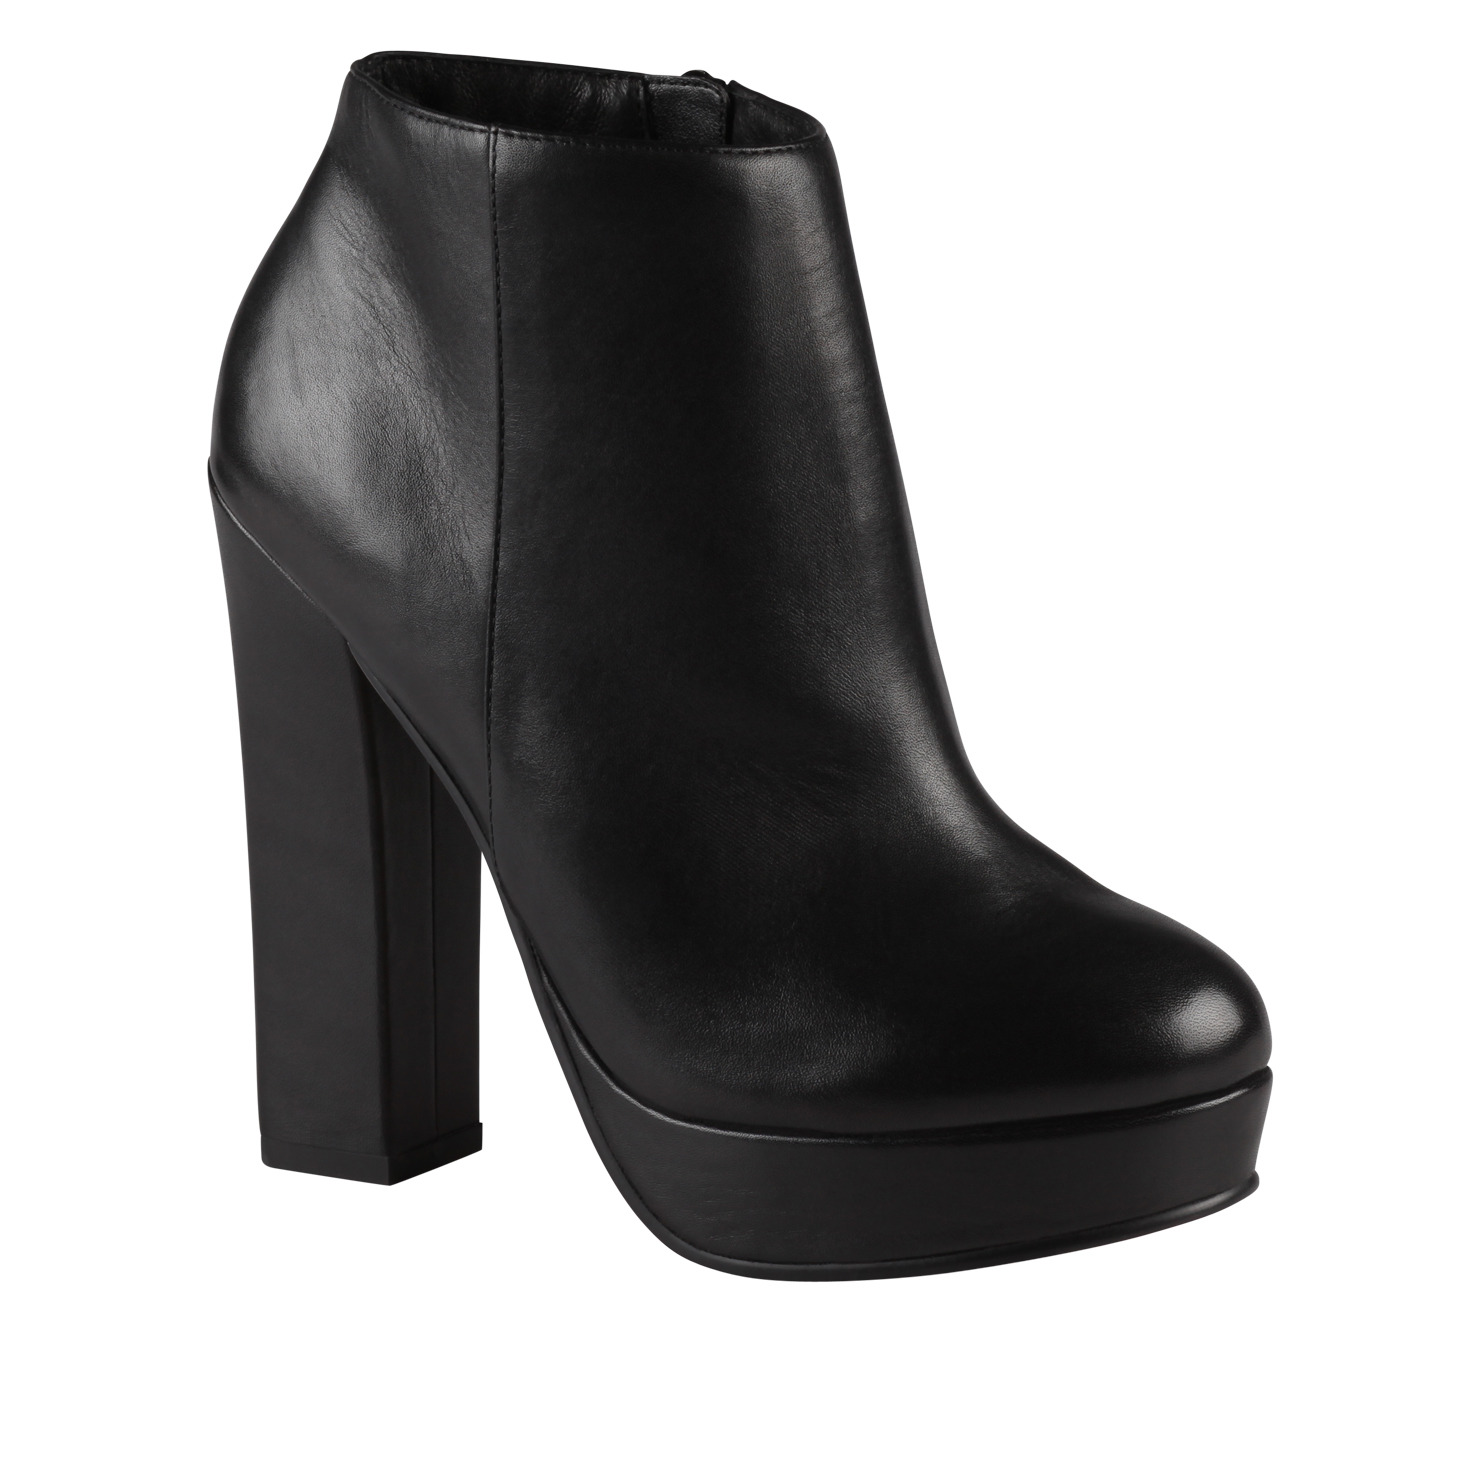 Fantastic Prices Will Range From $35 To $49, With Boots Topping Out At $89 The Fall Collection Is Comprised Of 17 Shoe Looks For Men And Women, As Well As A Few Handbag Styles Aldo Has A Strong Reputation For Designing Versatile, Ontrend Shoes